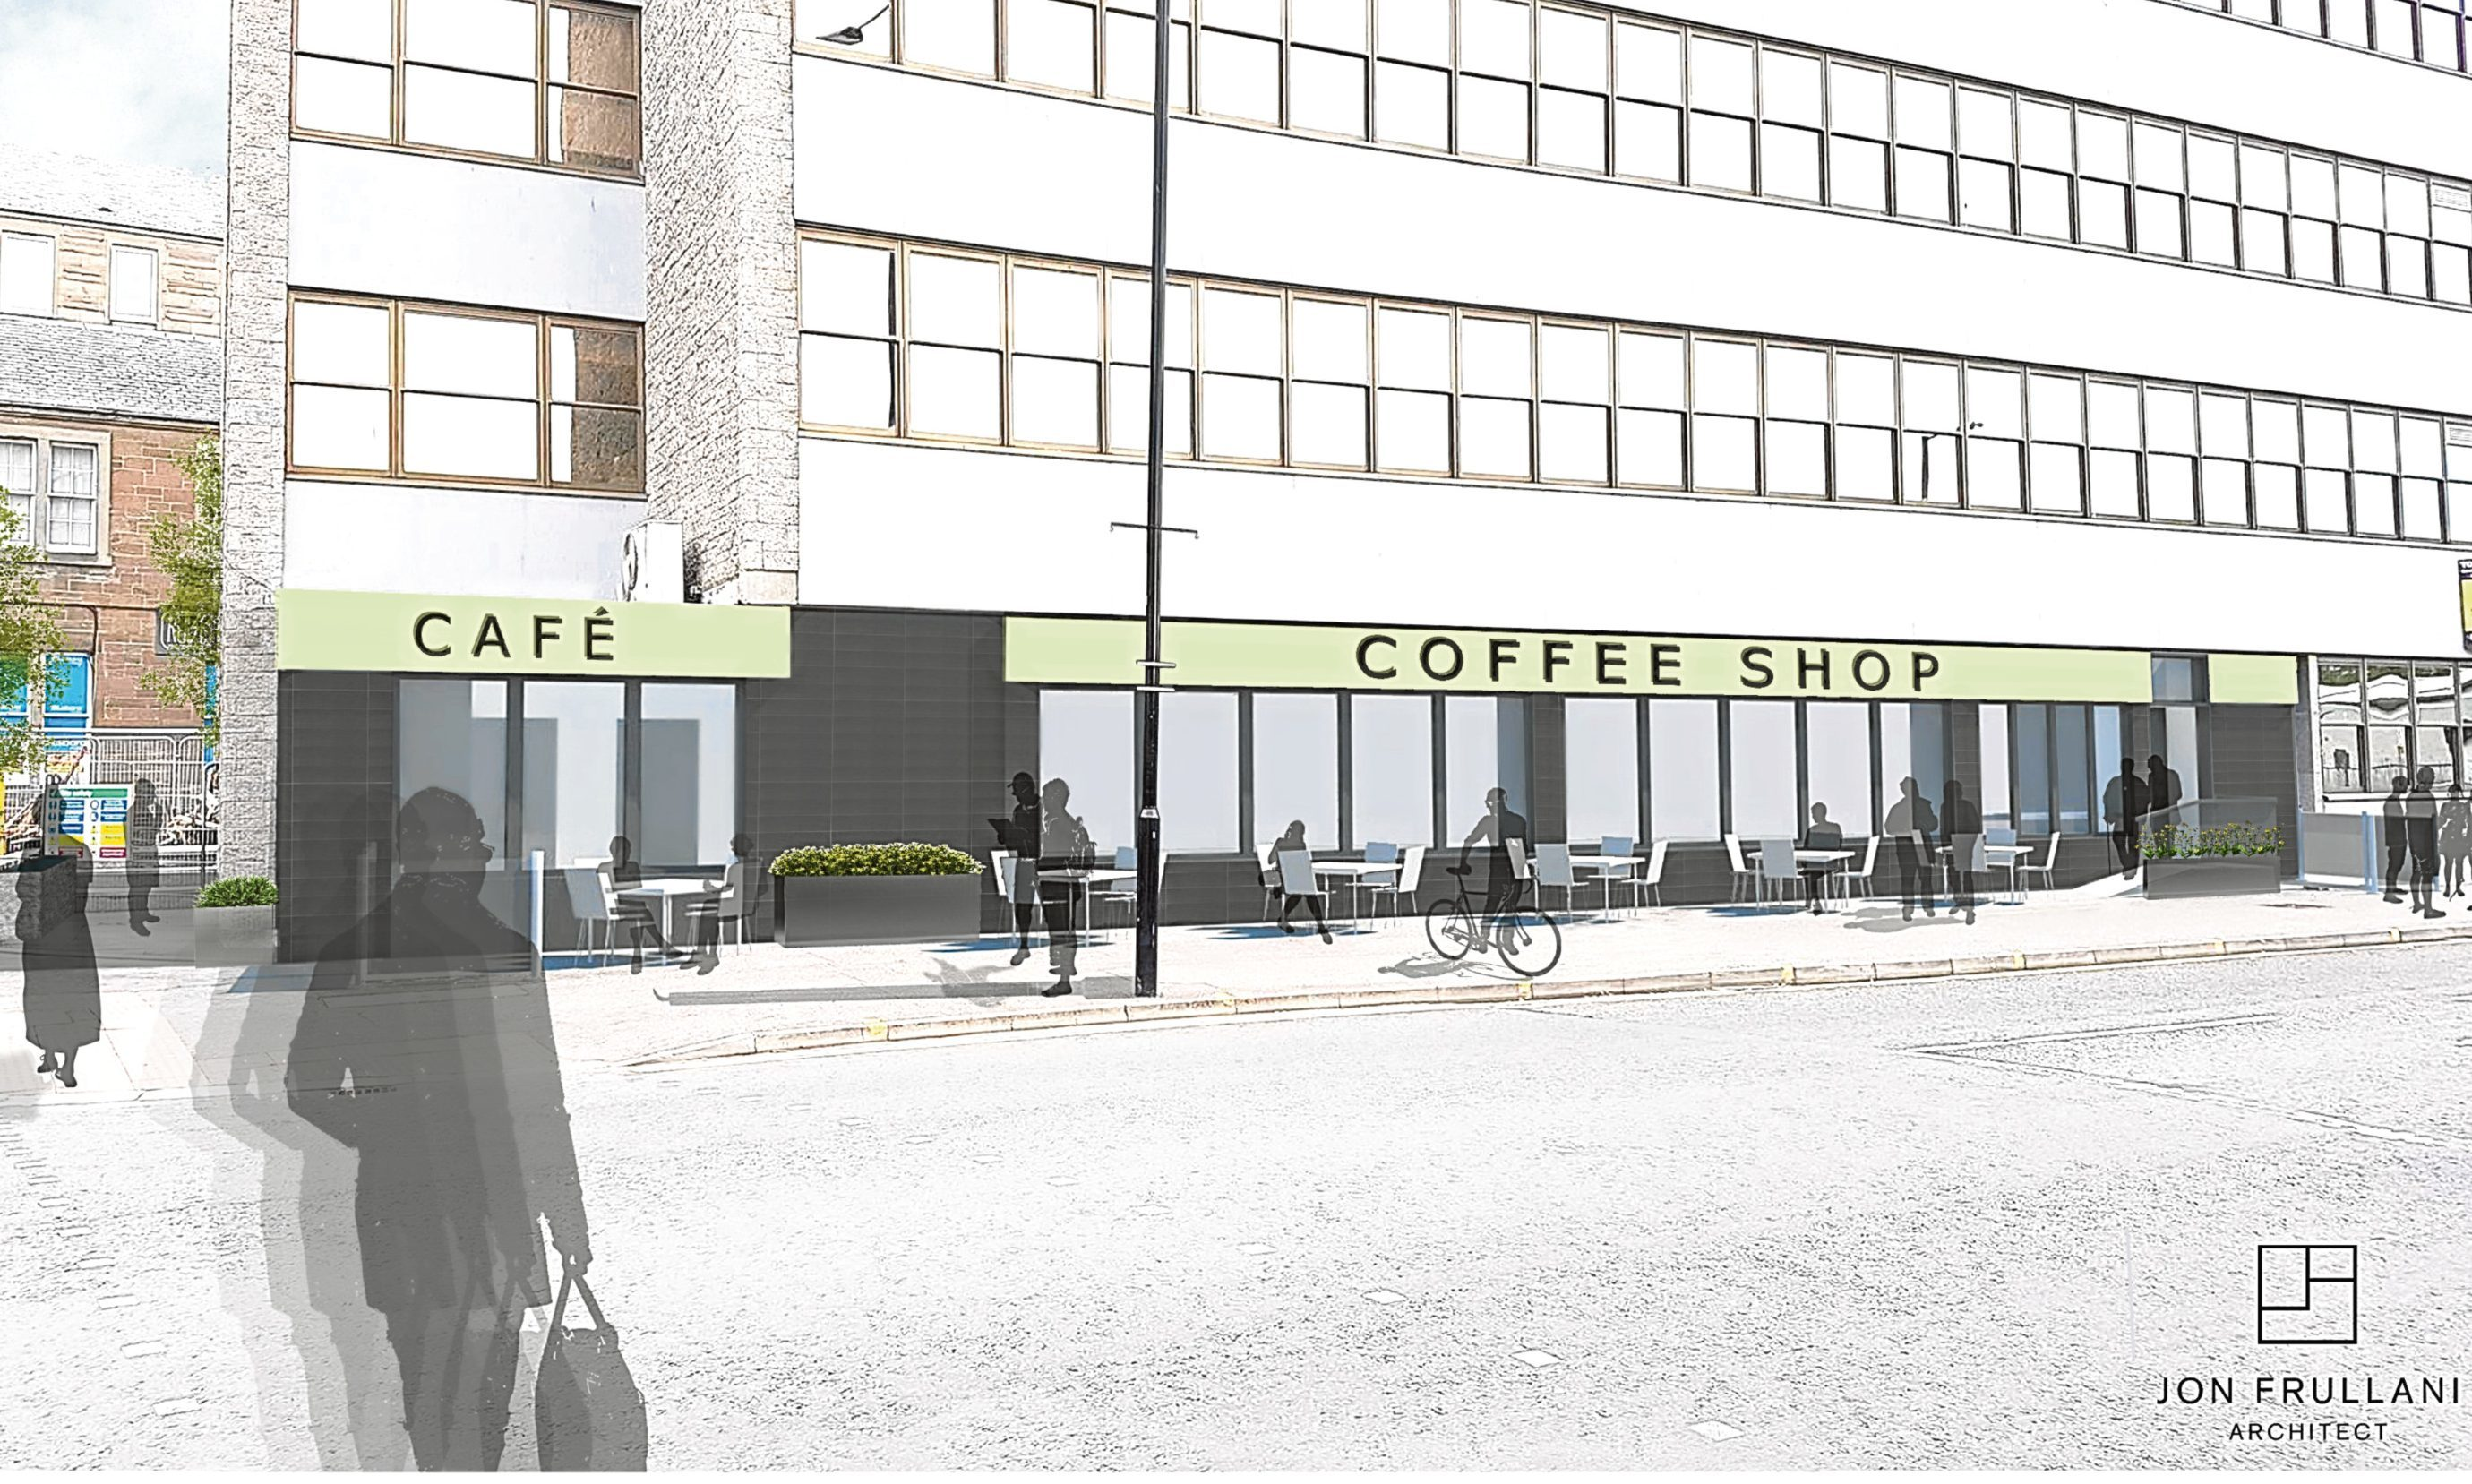 An artist's impression by Jon Frullani Architect of what the new coffee shop and cafe units, across the road from the bus station, would look like.